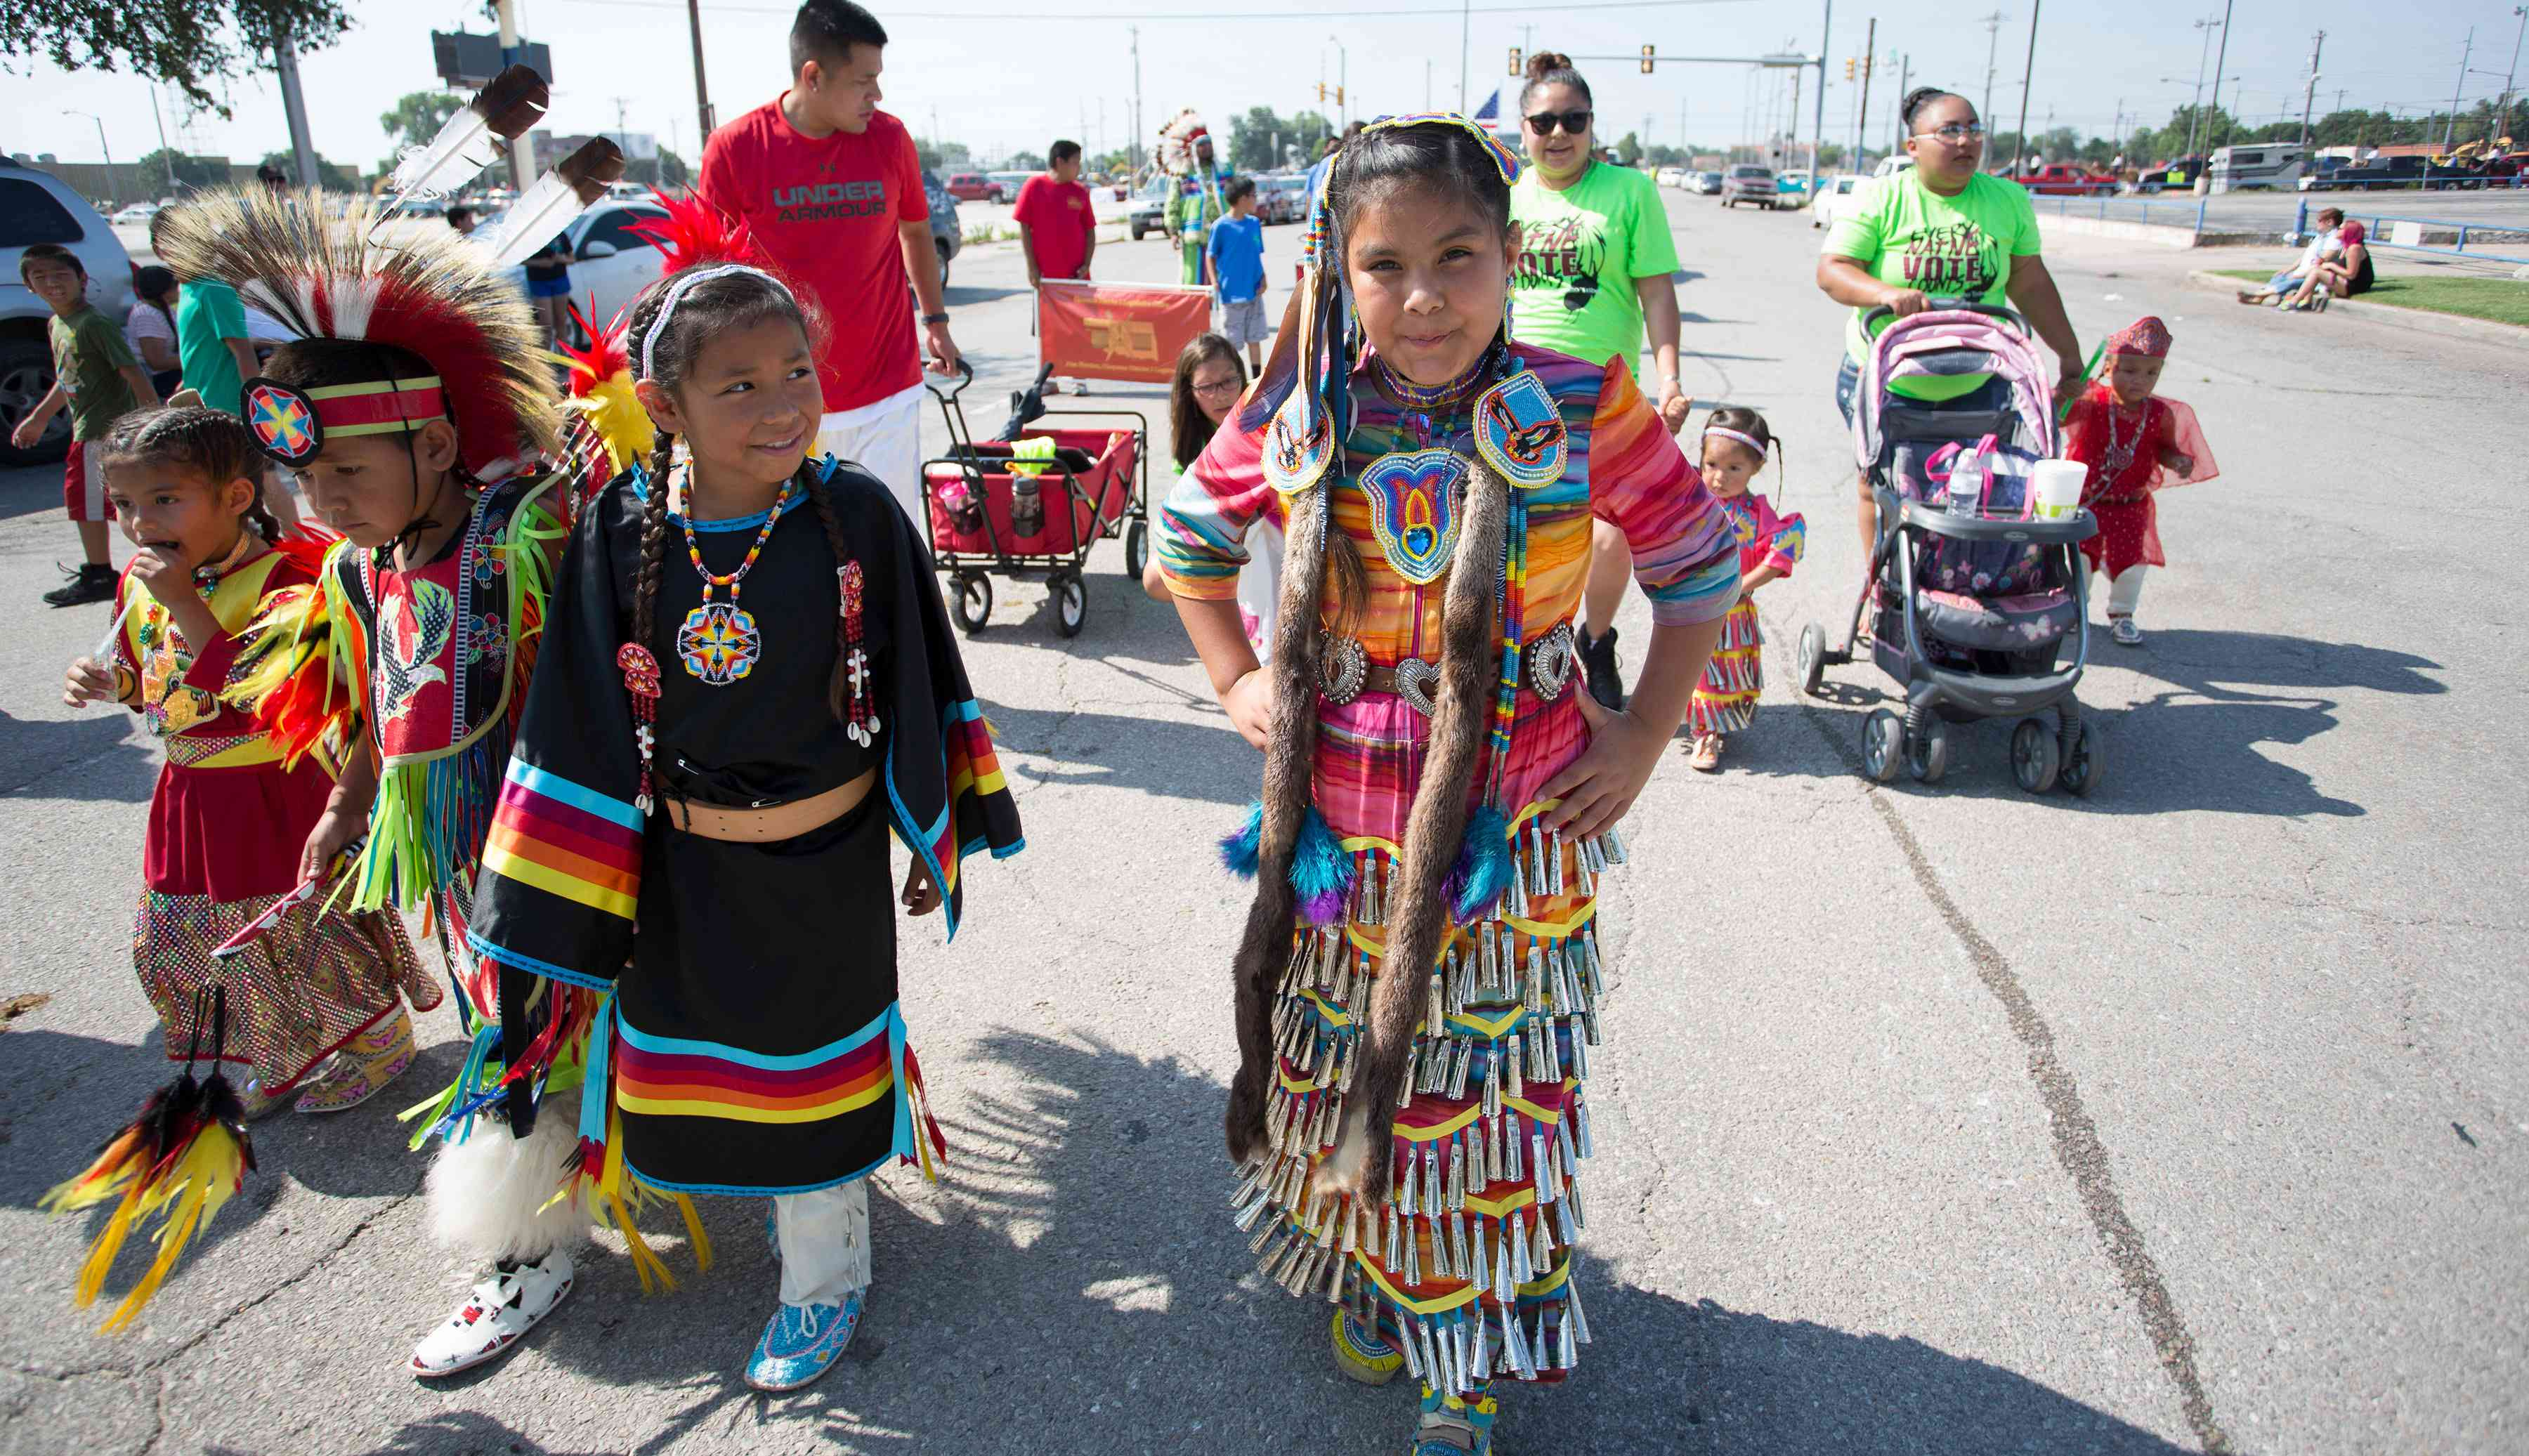 Arapaho People: Indigenous Americans in Wyoming and Oklahoma